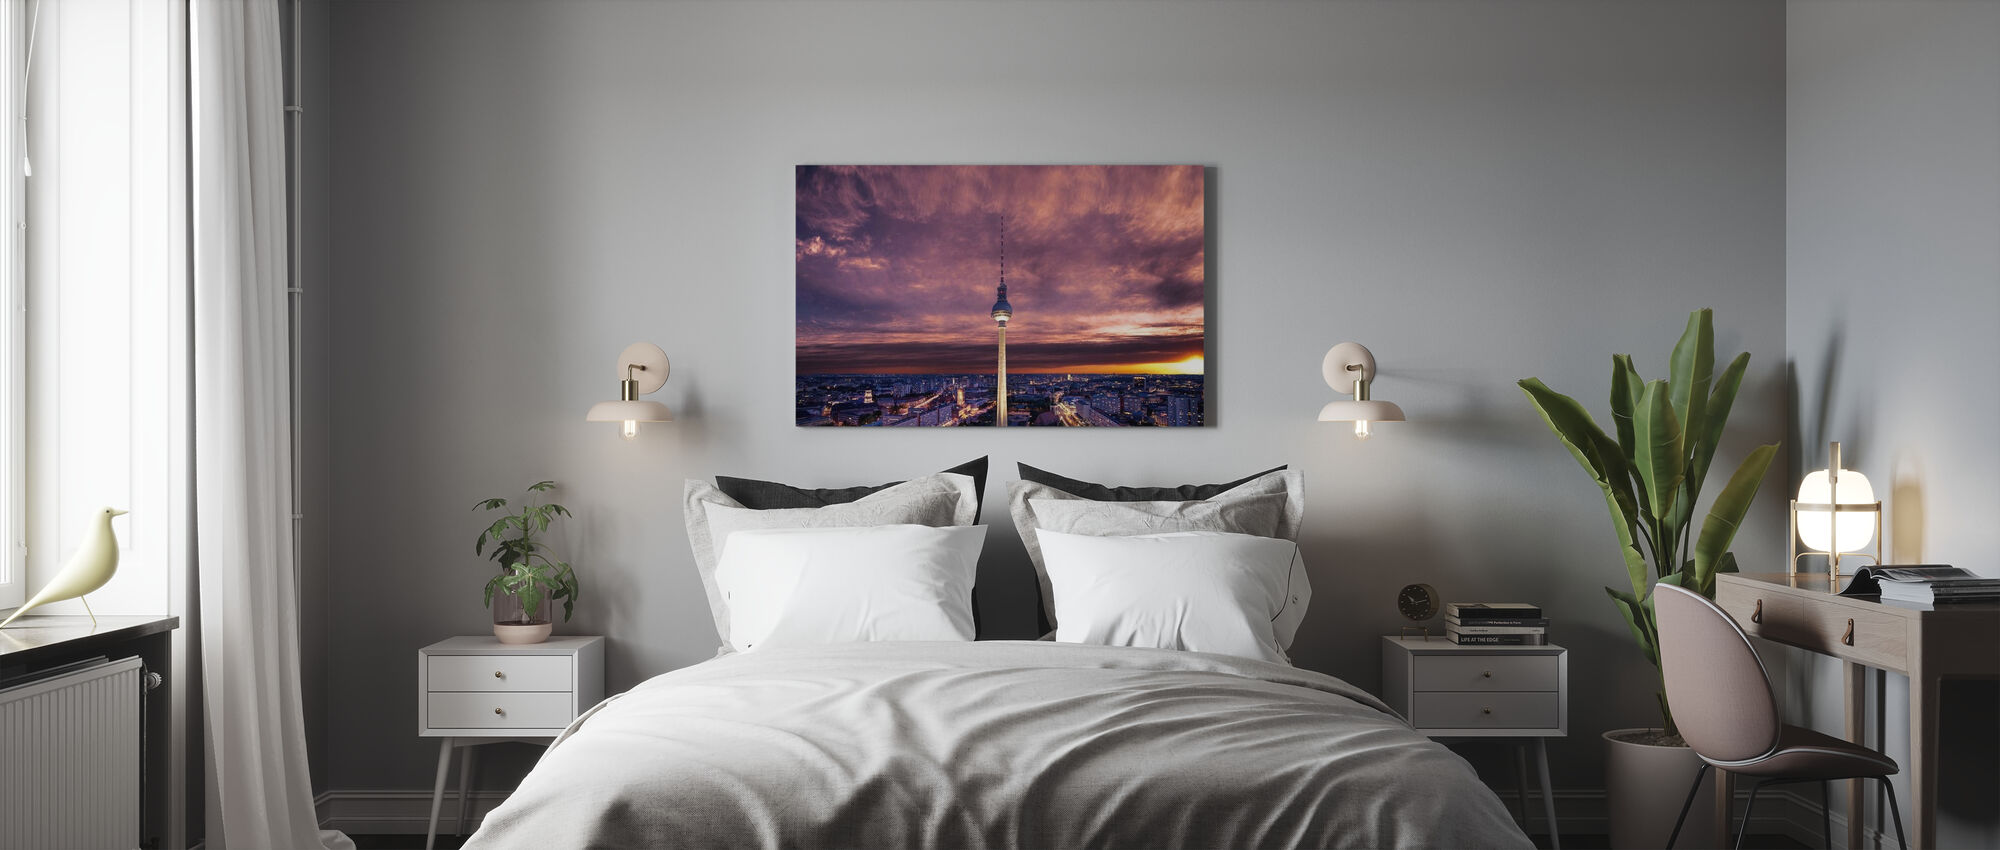 Tv-tower against Dramatic Sky - Canvas print - Bedroom